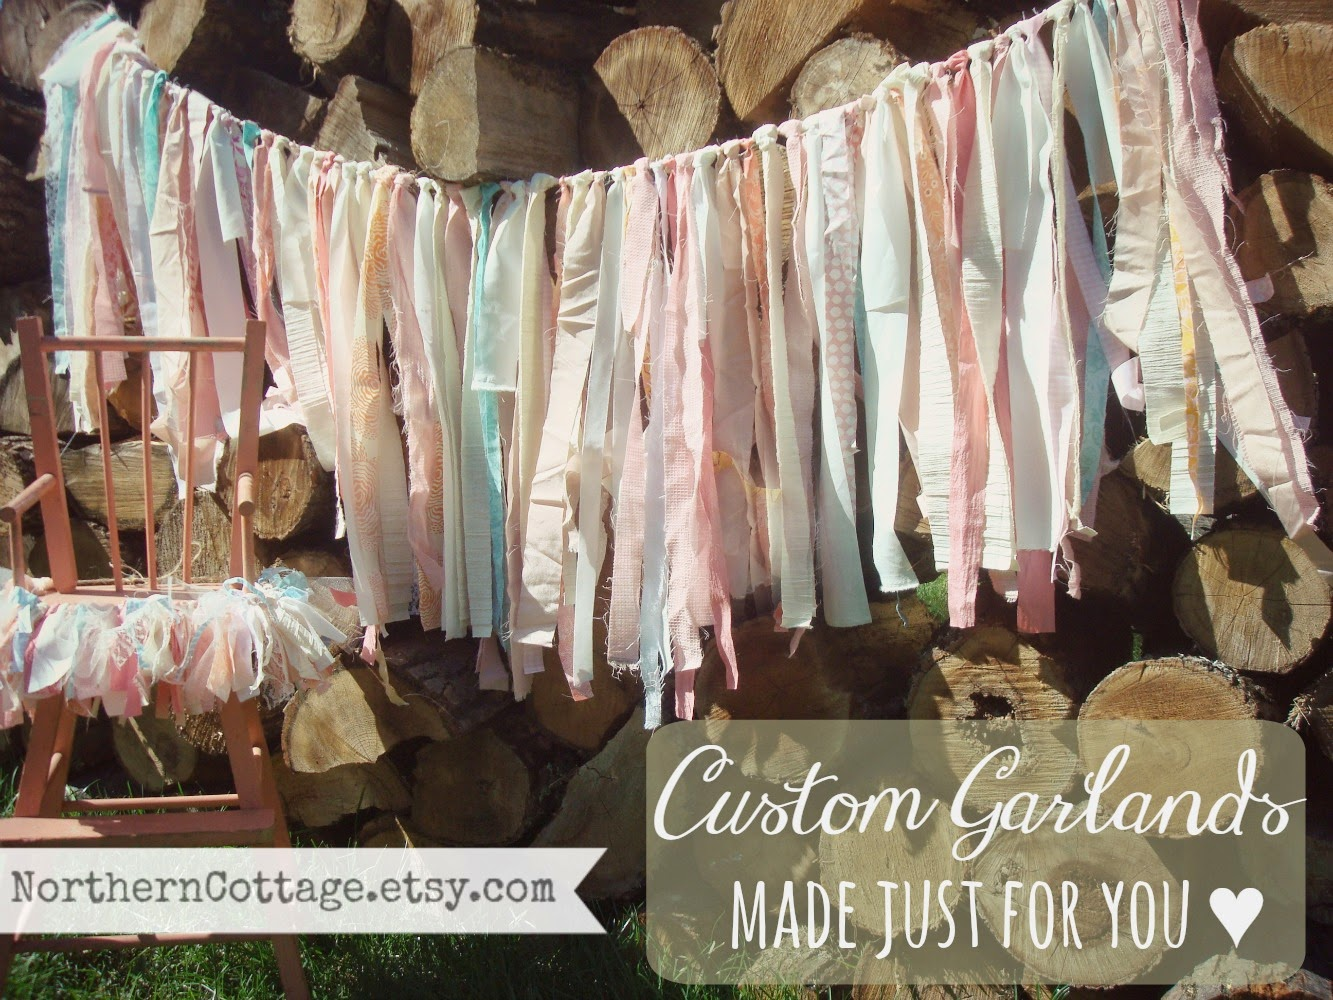 Custom Garlands